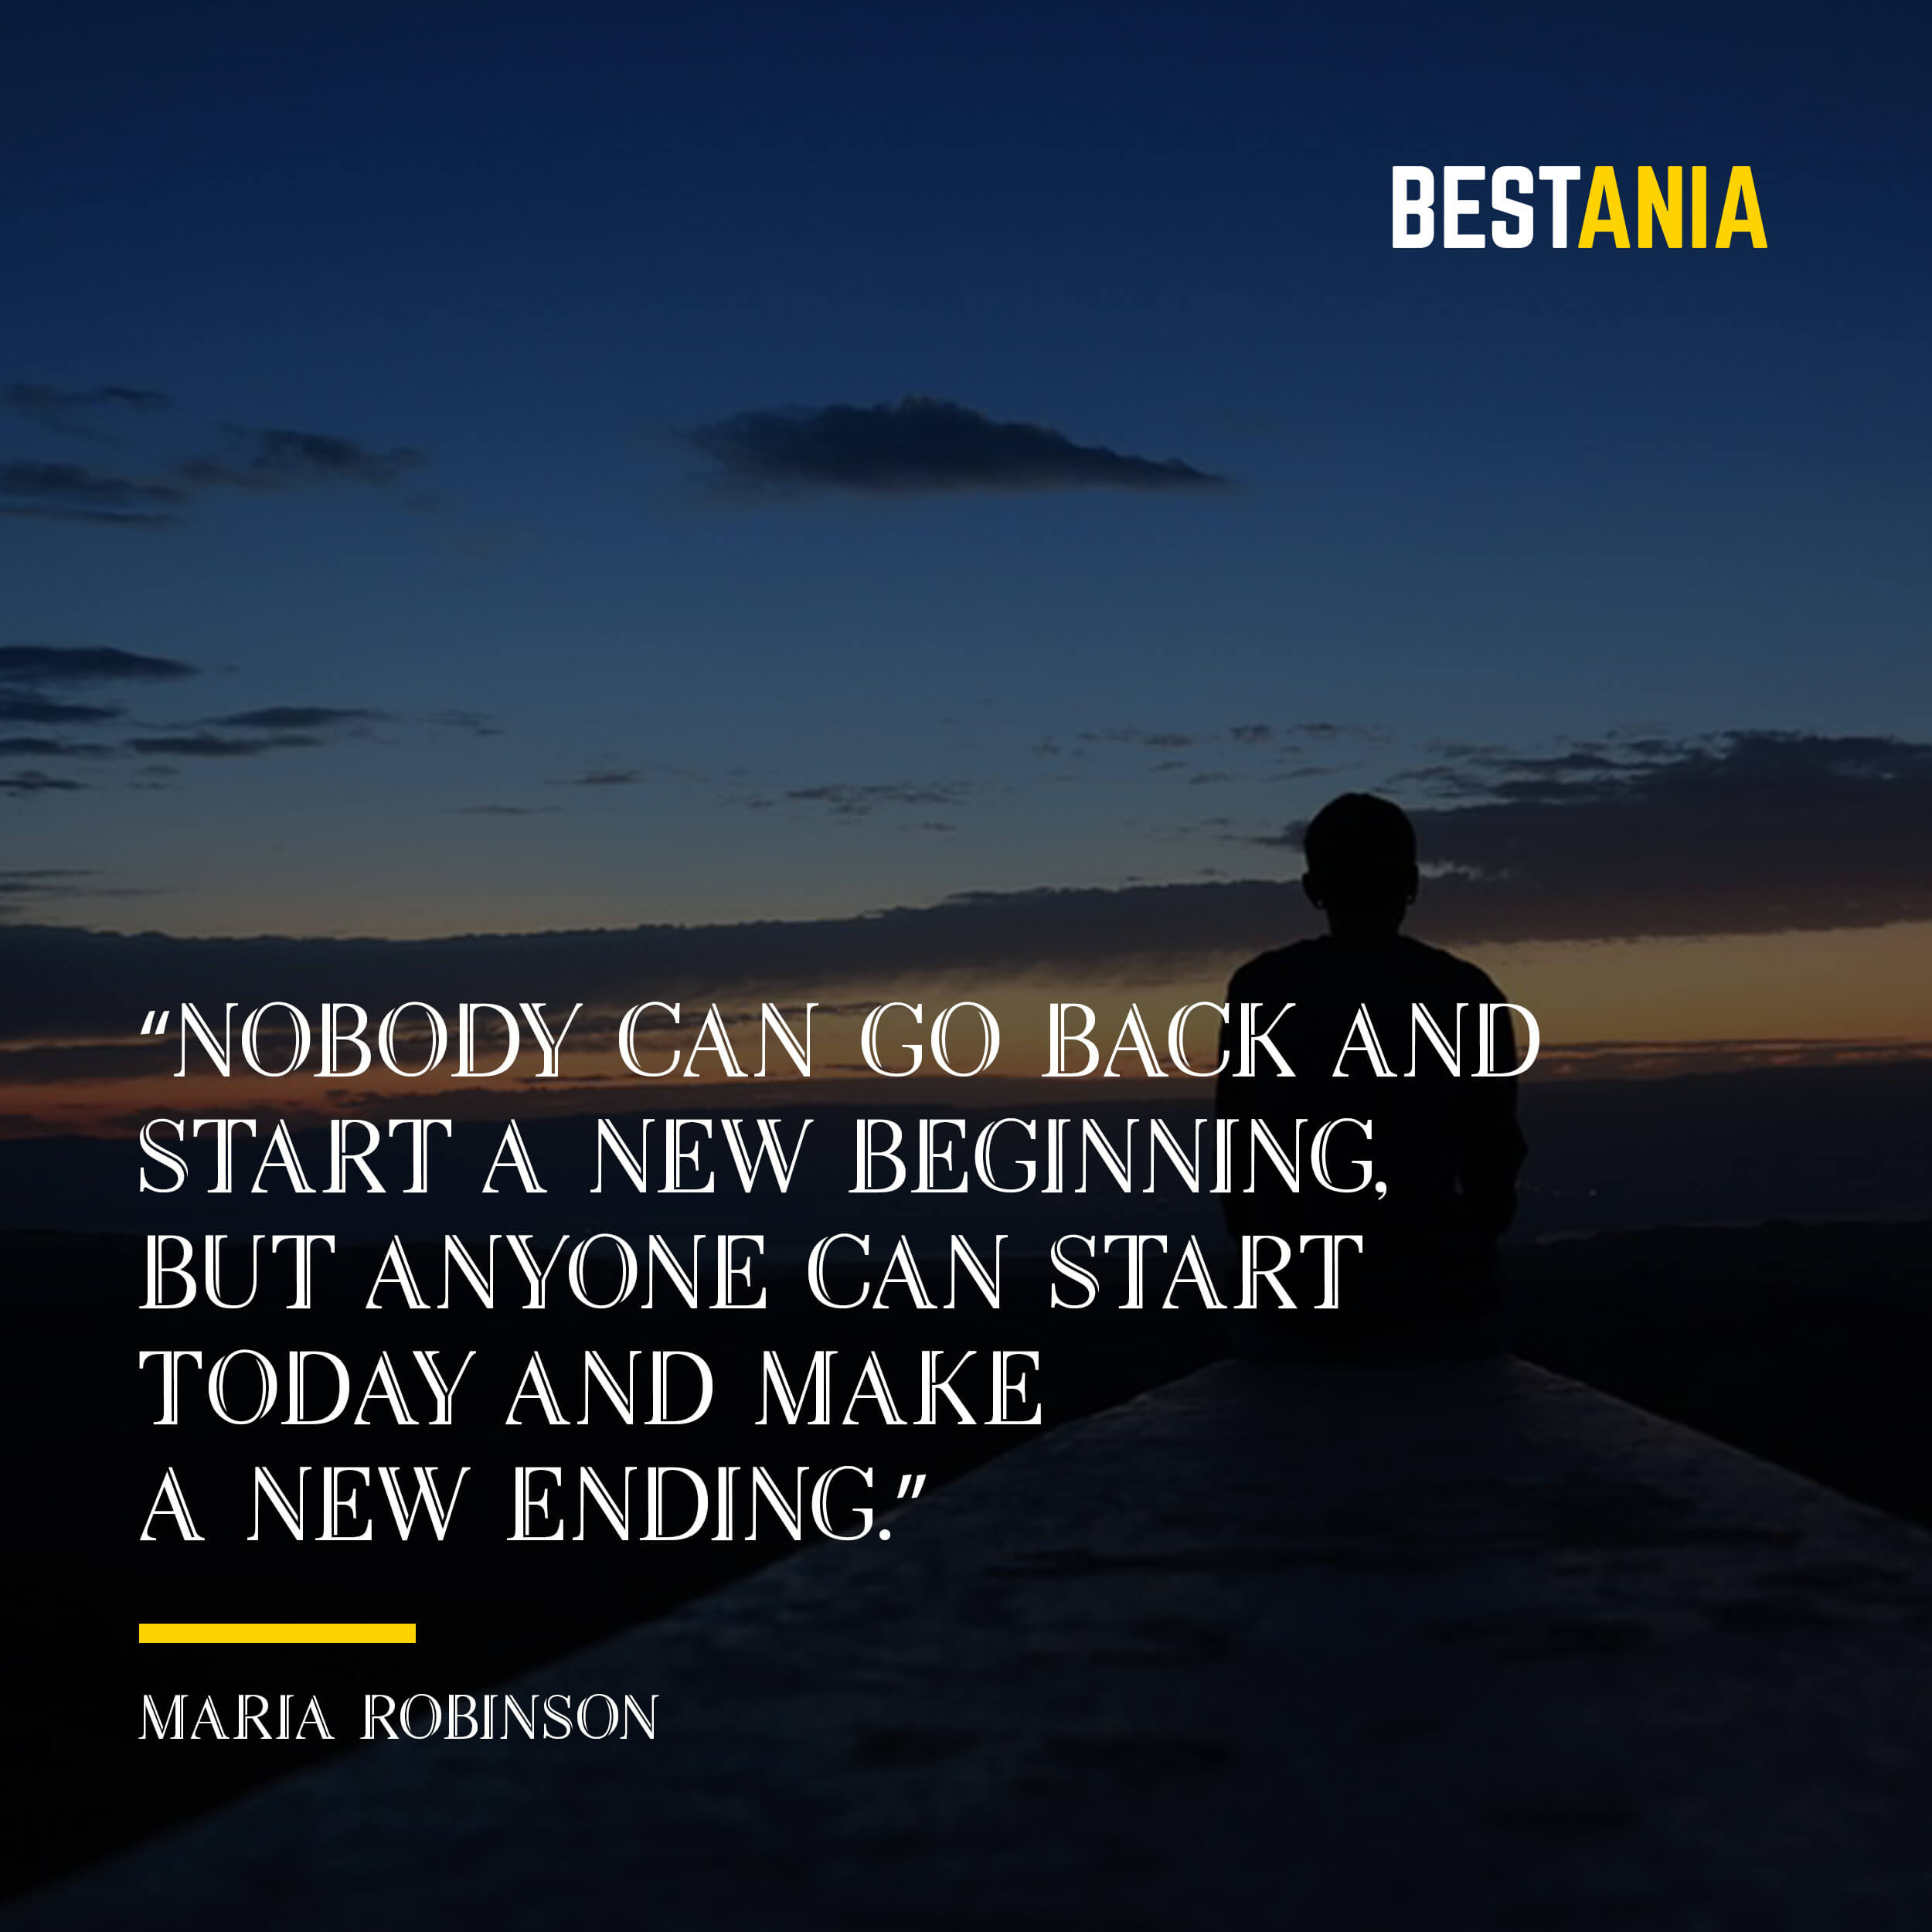 Nobody can go back and start a new beginning, but anyone can start today and make a new ending. – Maria Robinson